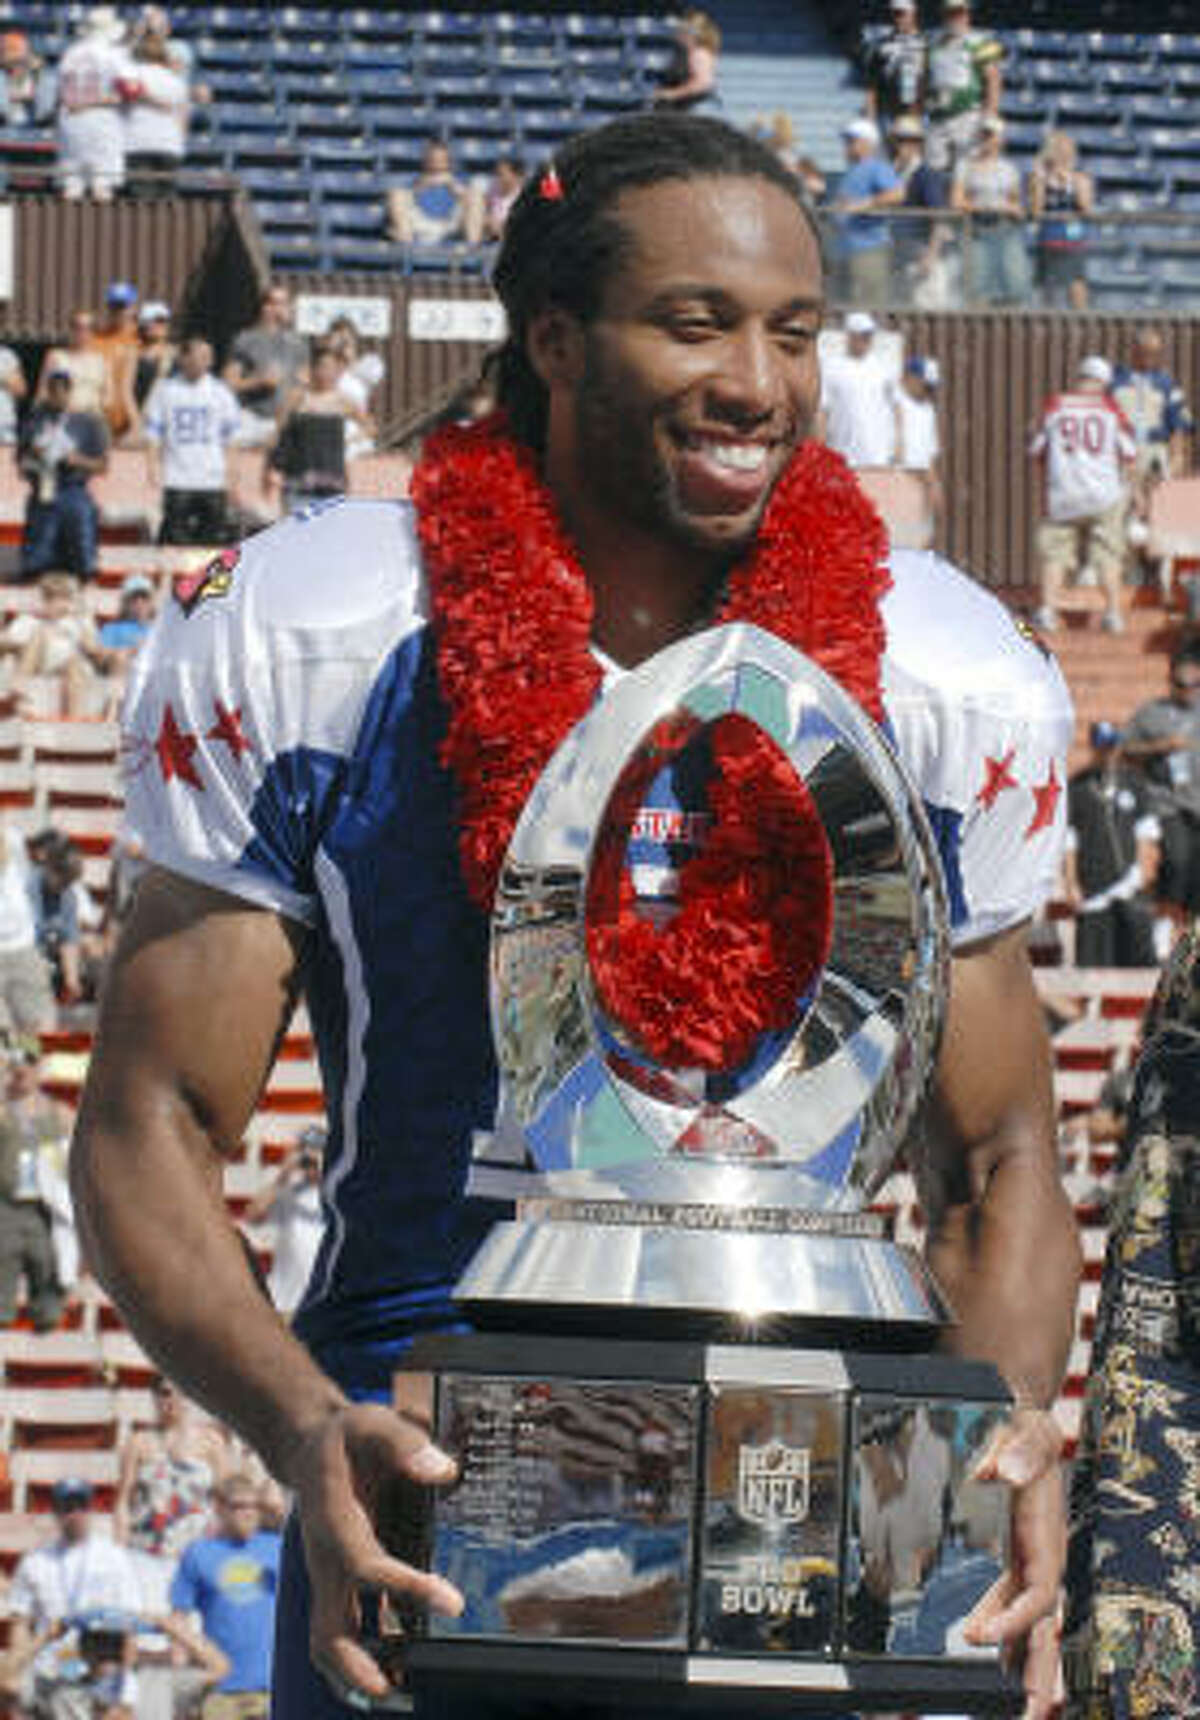 NFC receiver Larry Fitzgerald, of the Arizona Cardinals, holds the MVP trophy after the Pro Bowl. Fitzgerald caught five passes for 81 yards and two touchdowns.